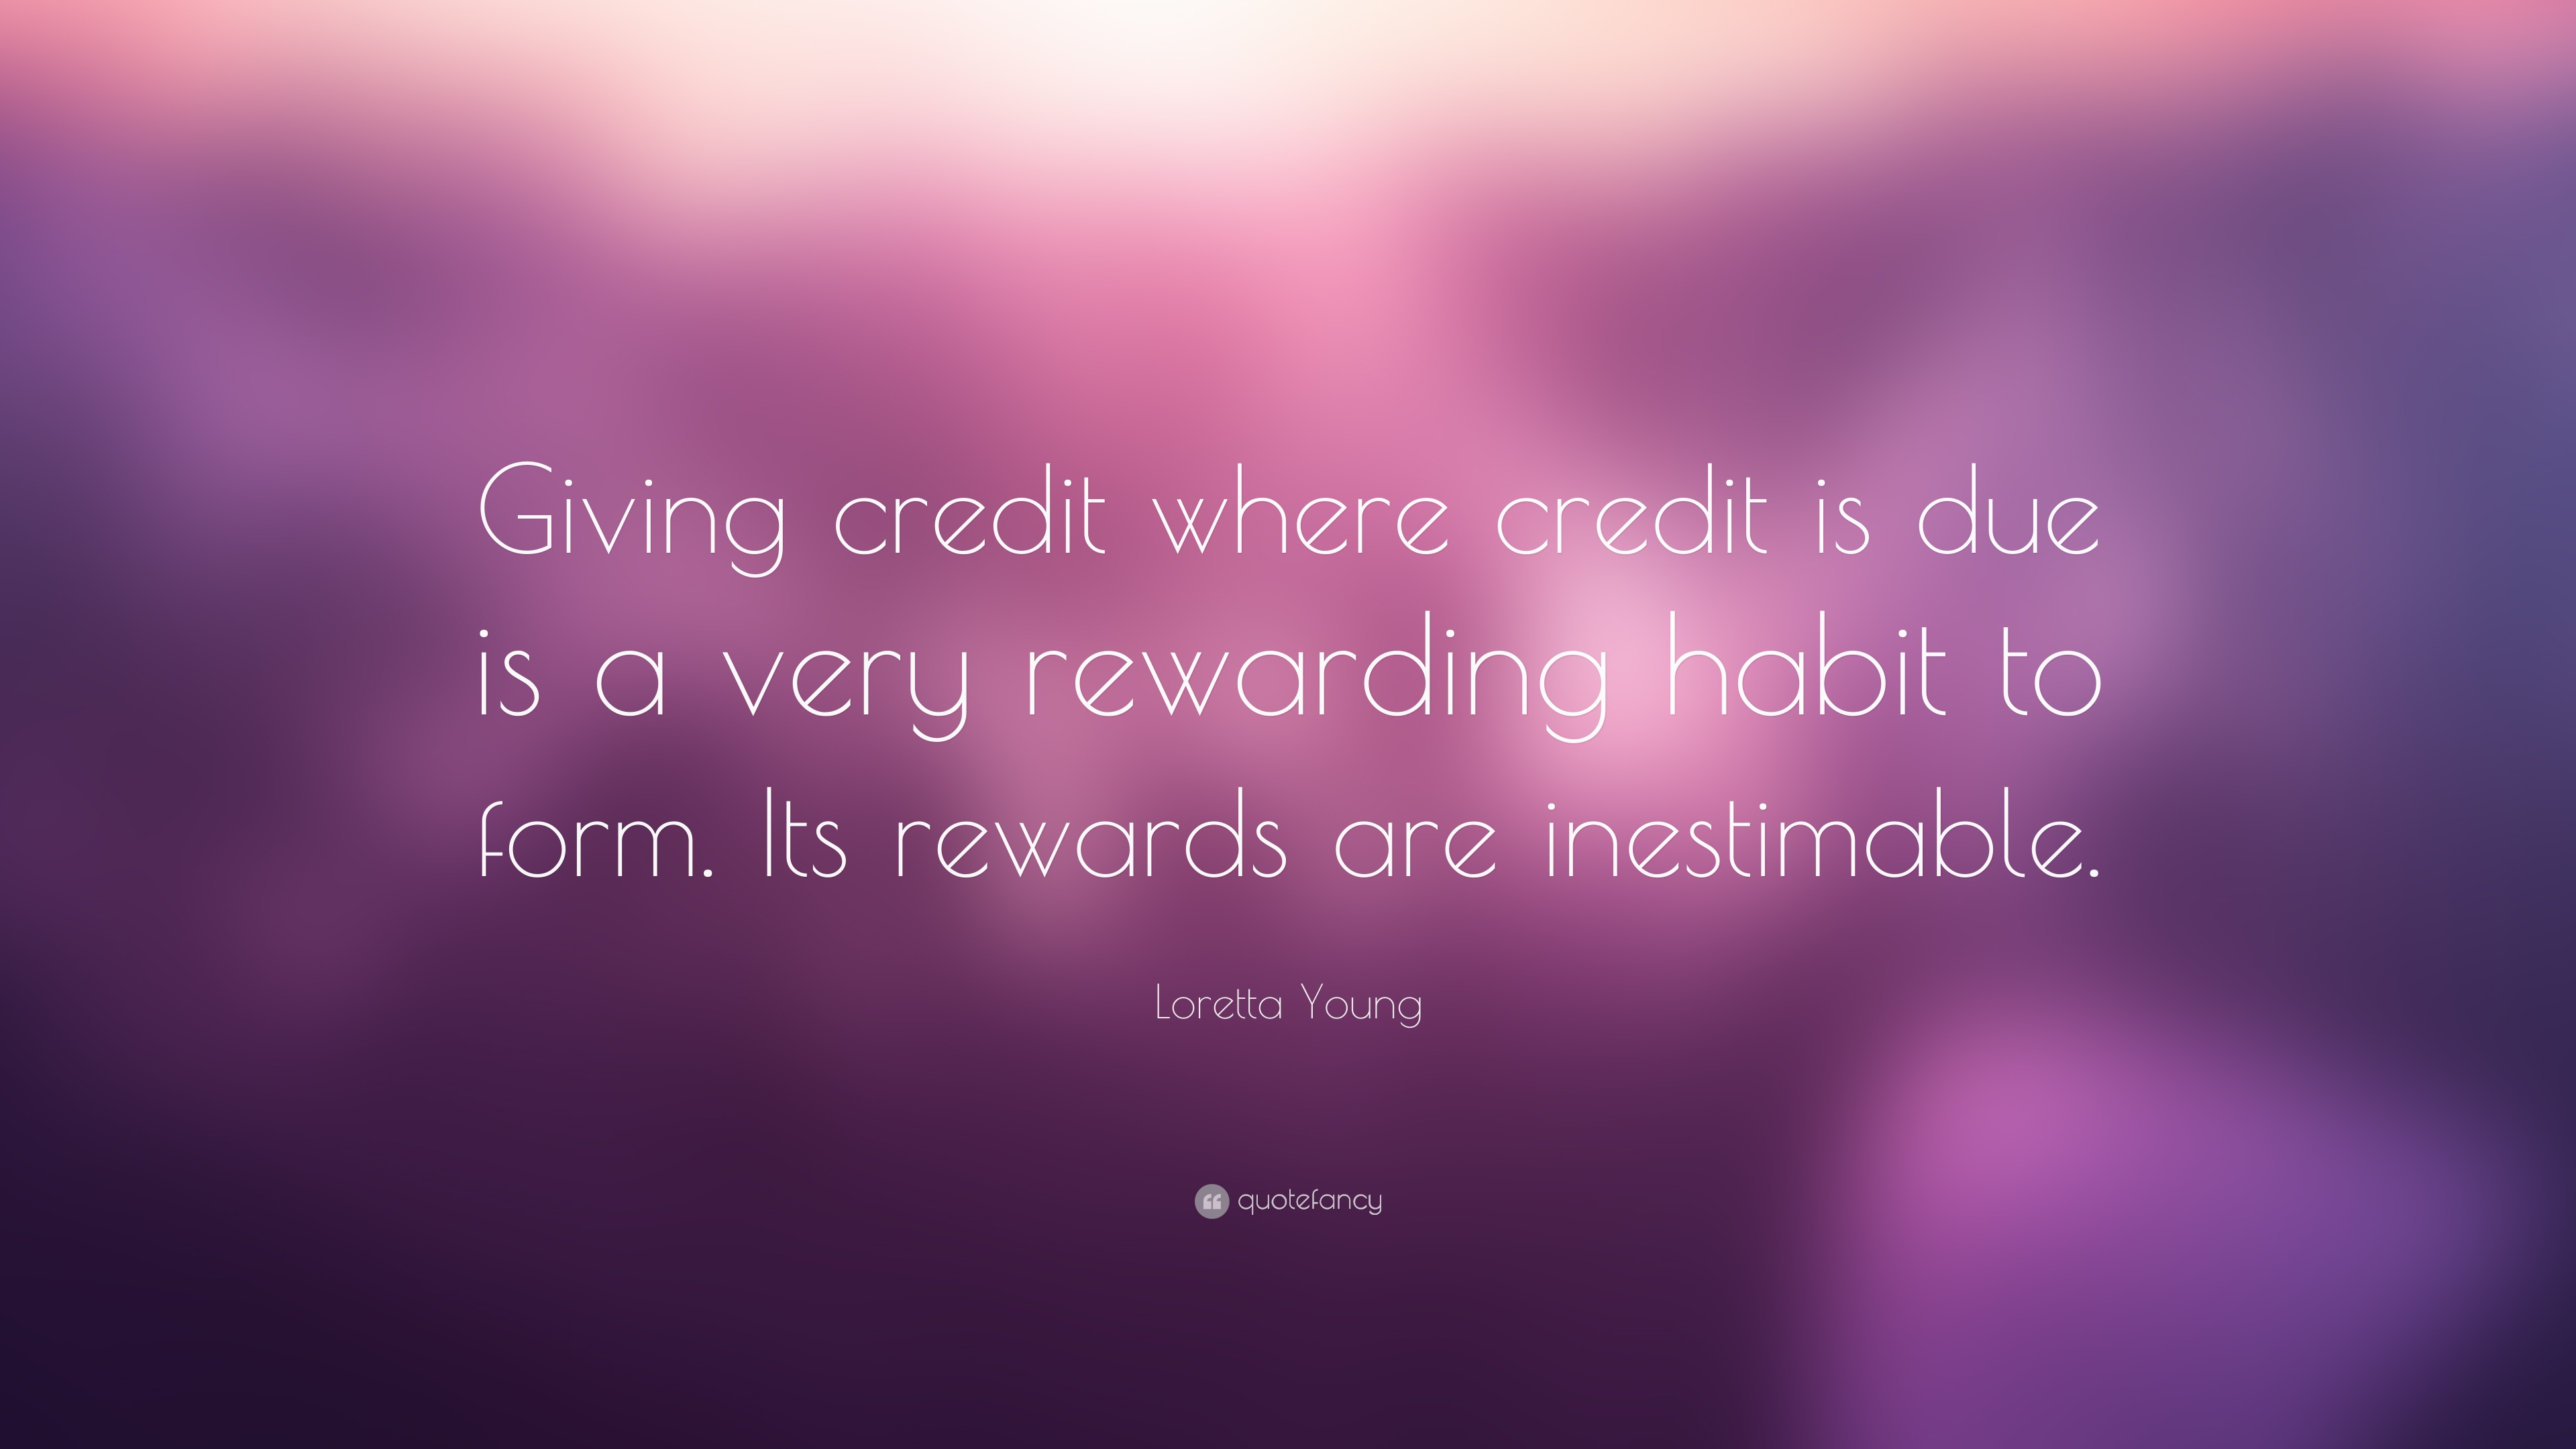 loretta young quote giving credit where credit is due is a very